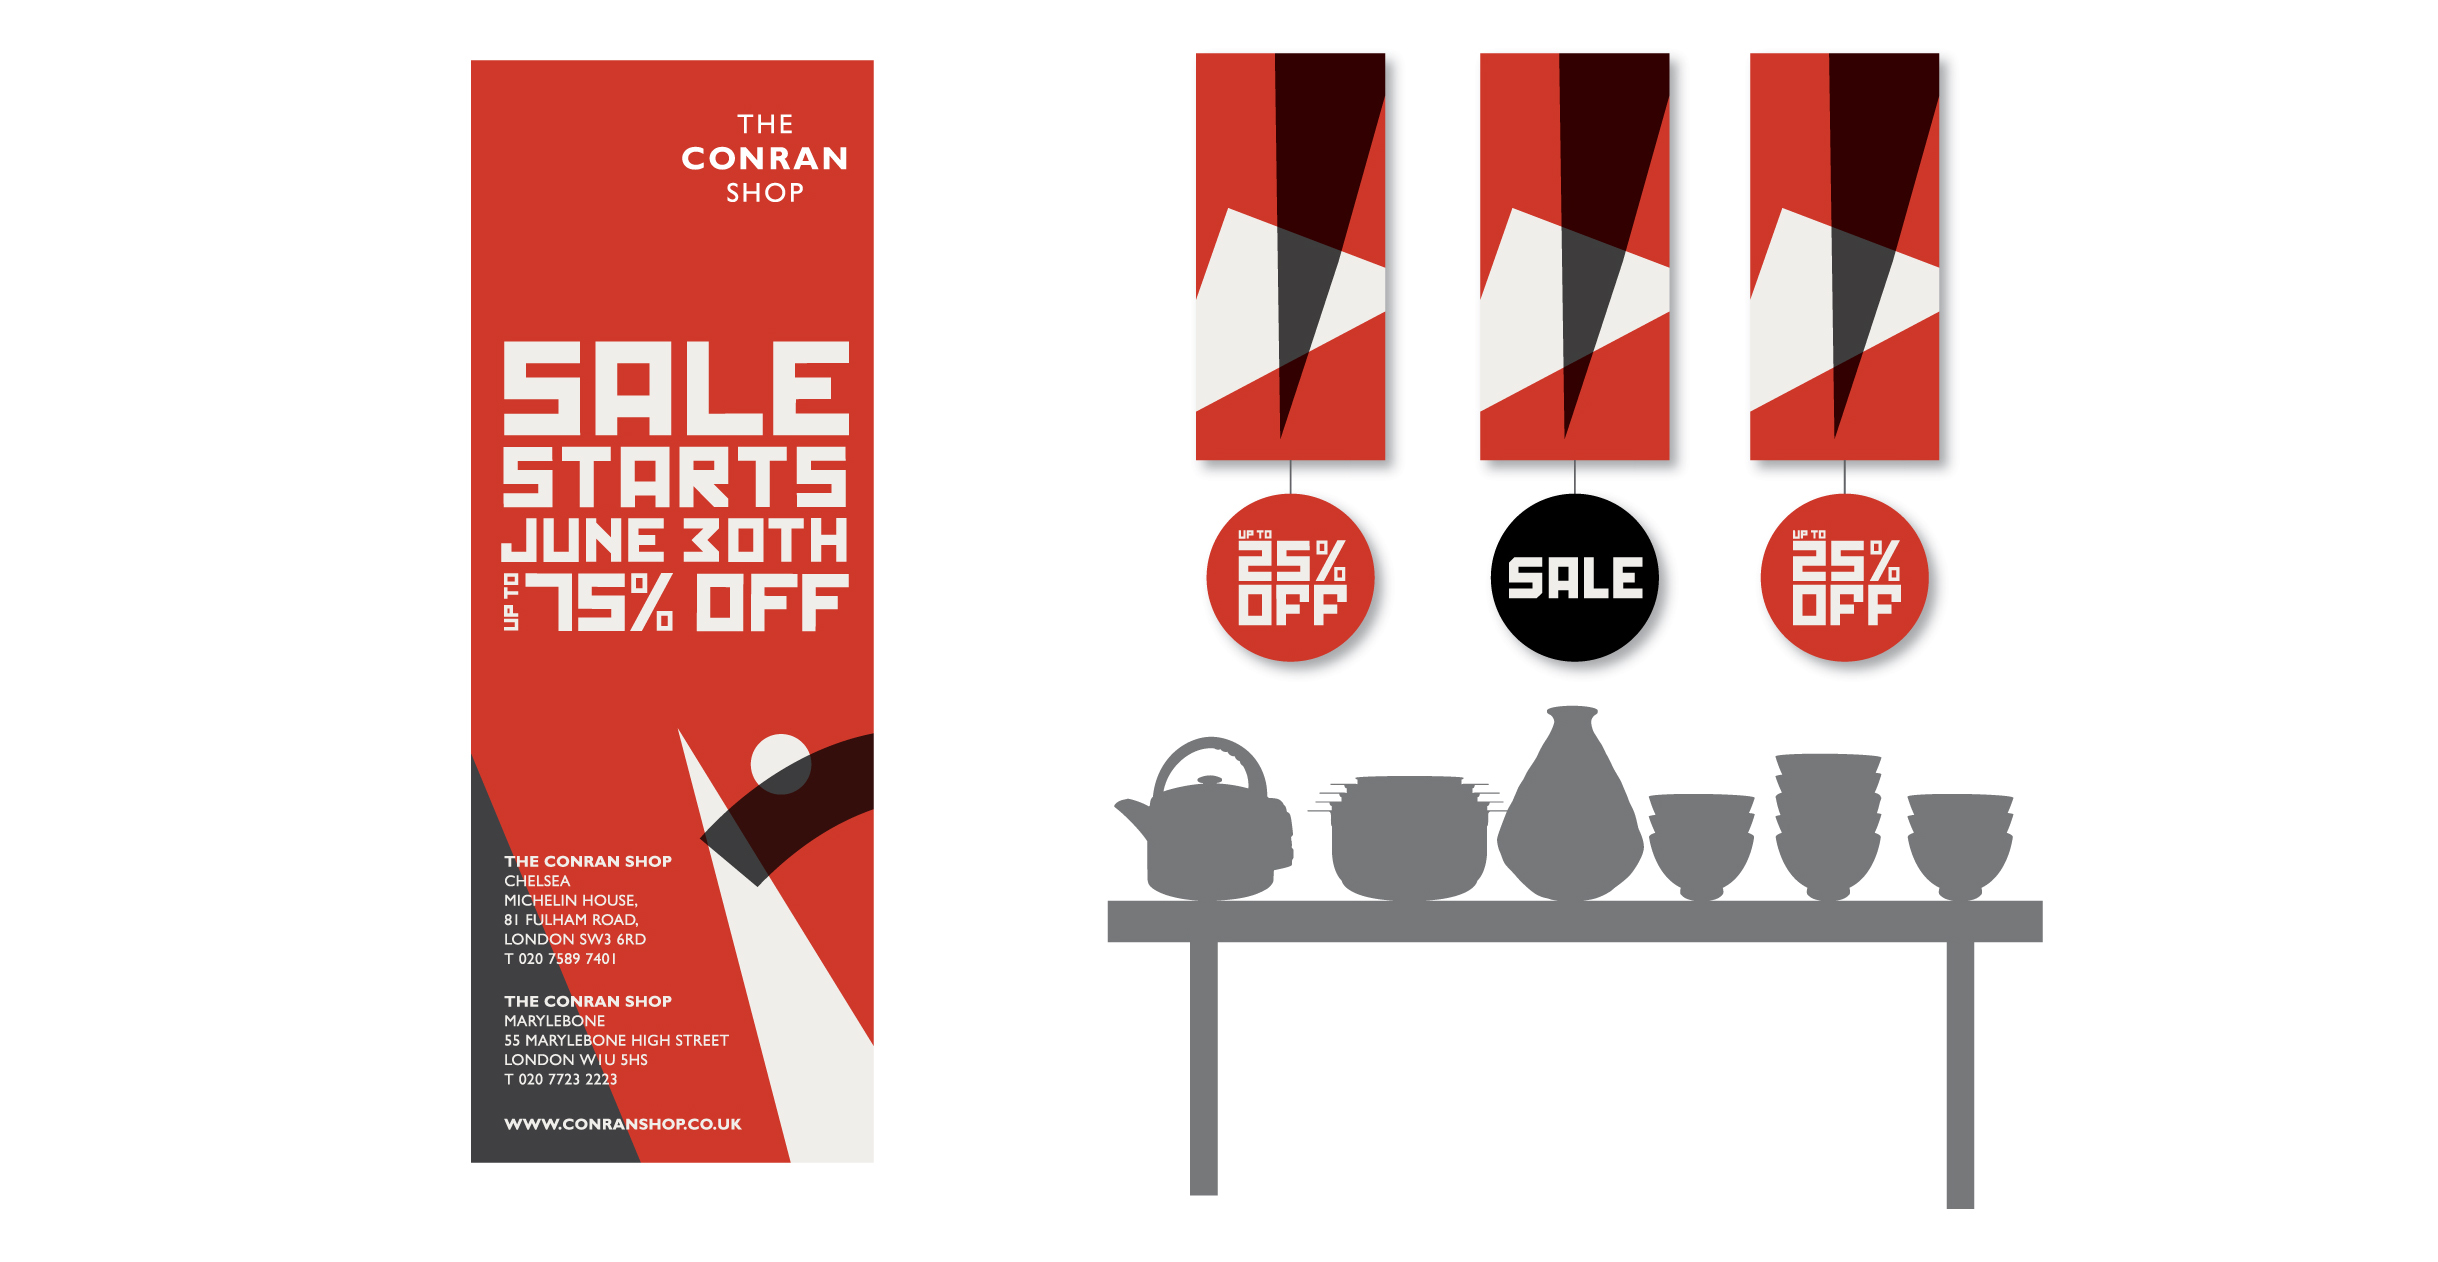 Sale banner and hanging signage for The Conran Shop sale POS